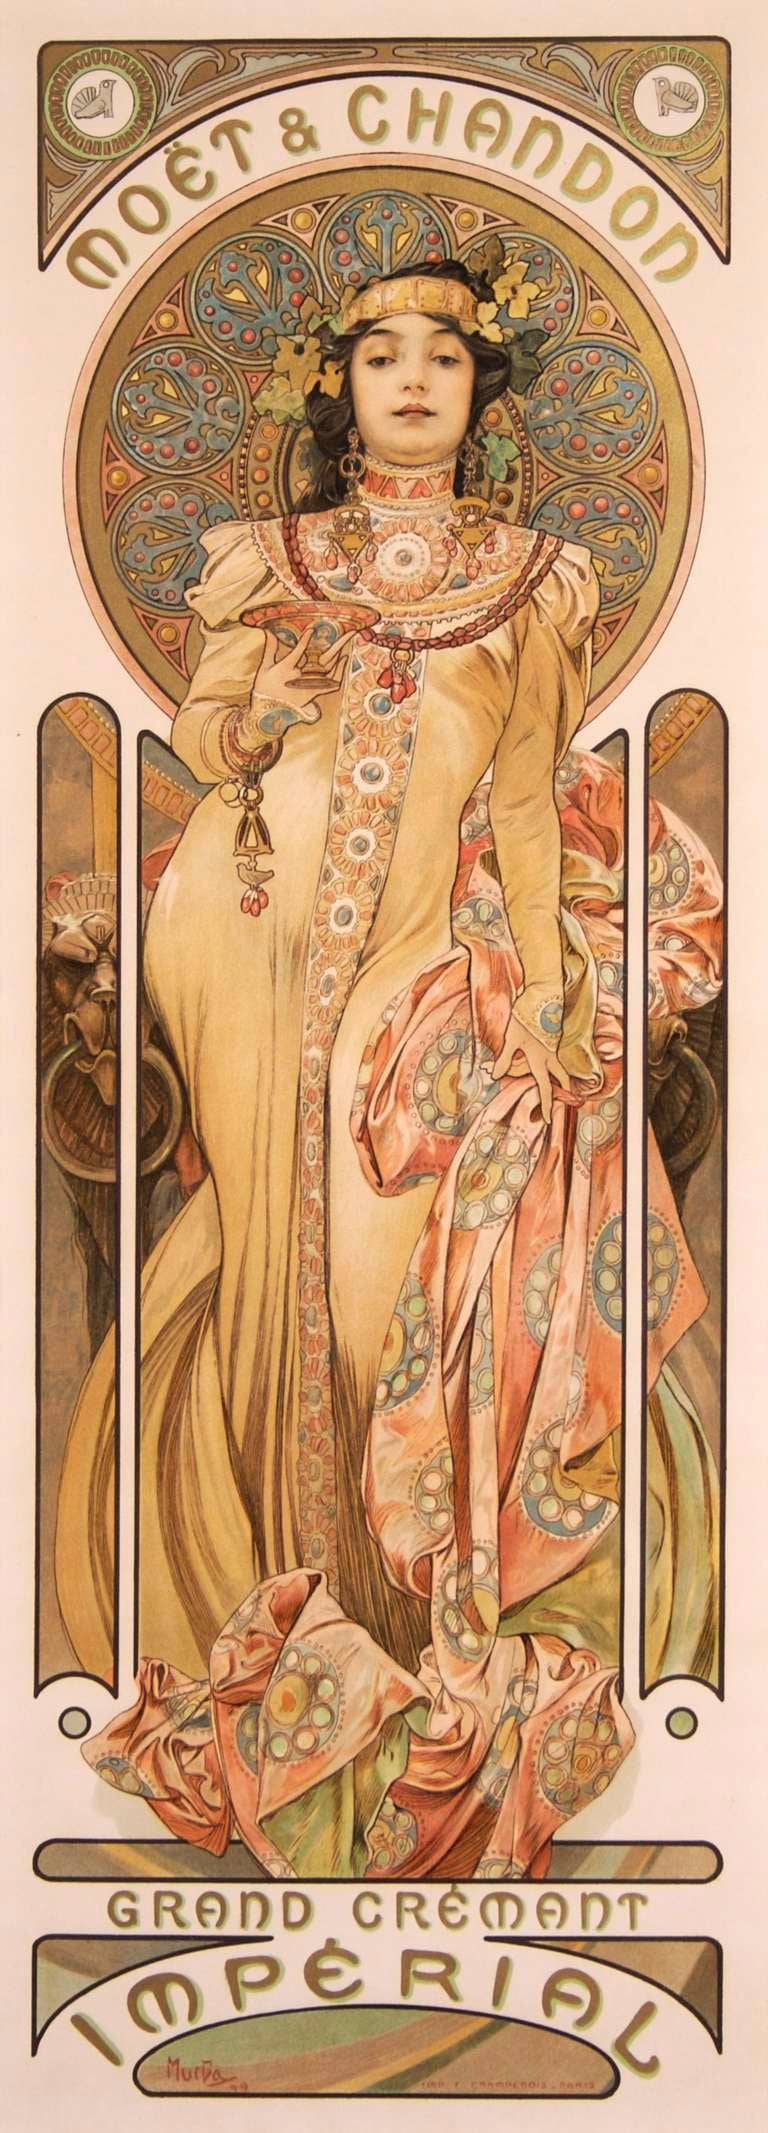 Pair of Original French Art Nouveau Period Posters by Alphonse Mucha 3